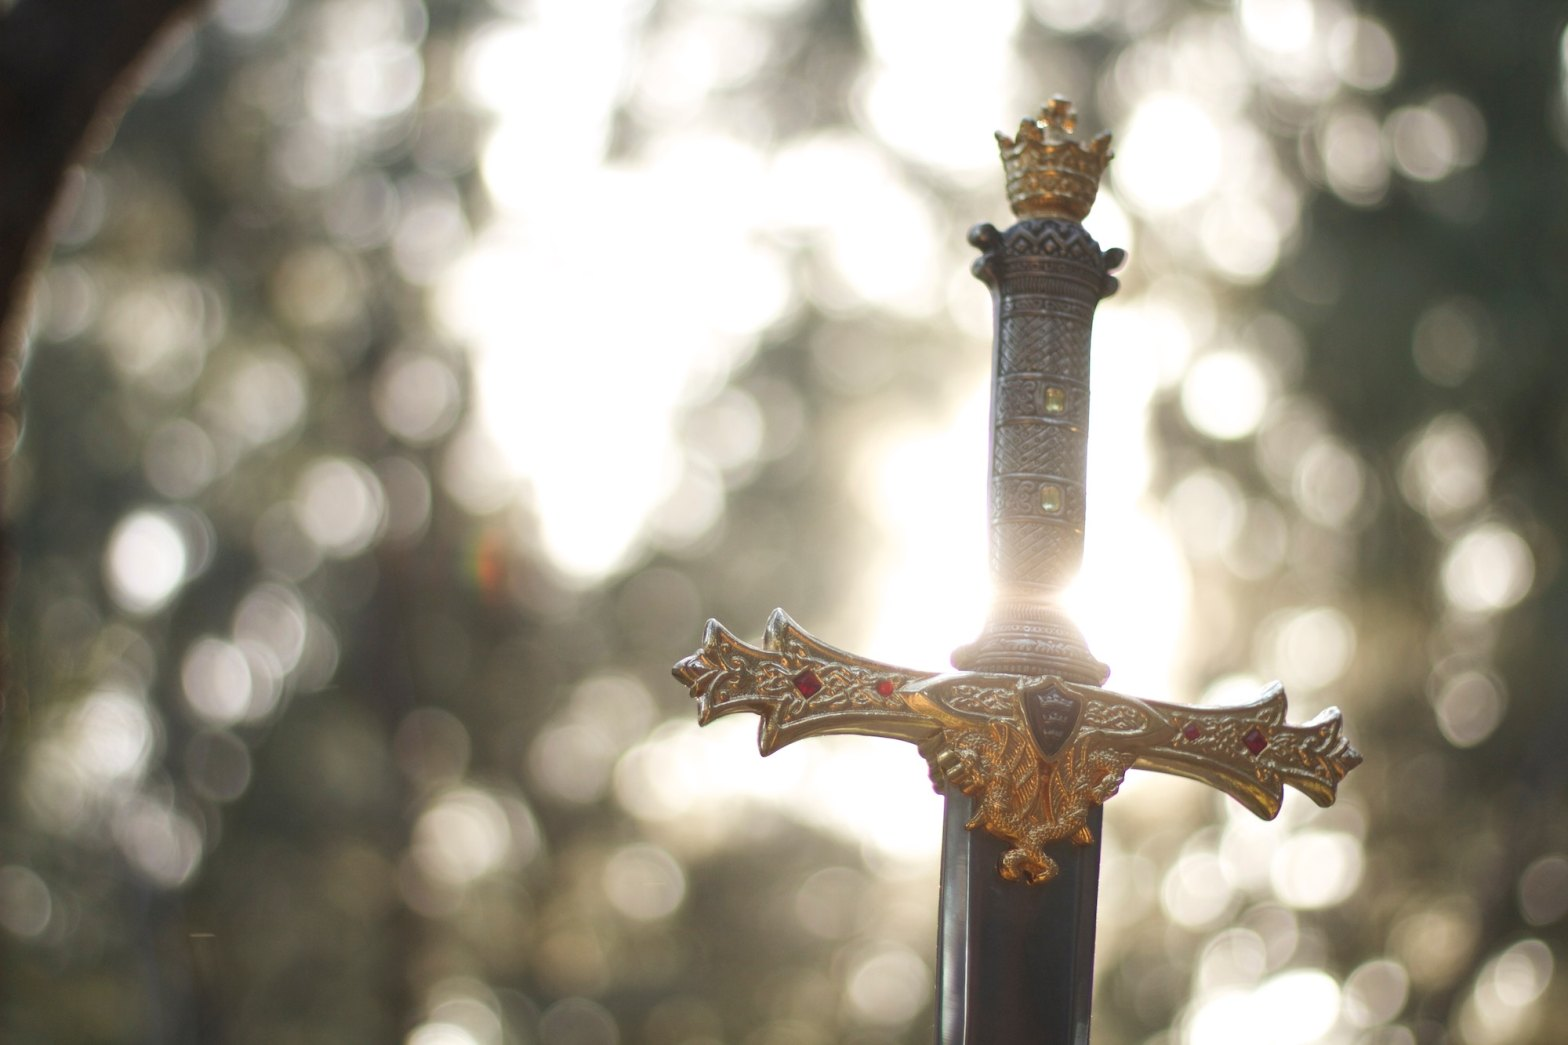 Sword with sunlight